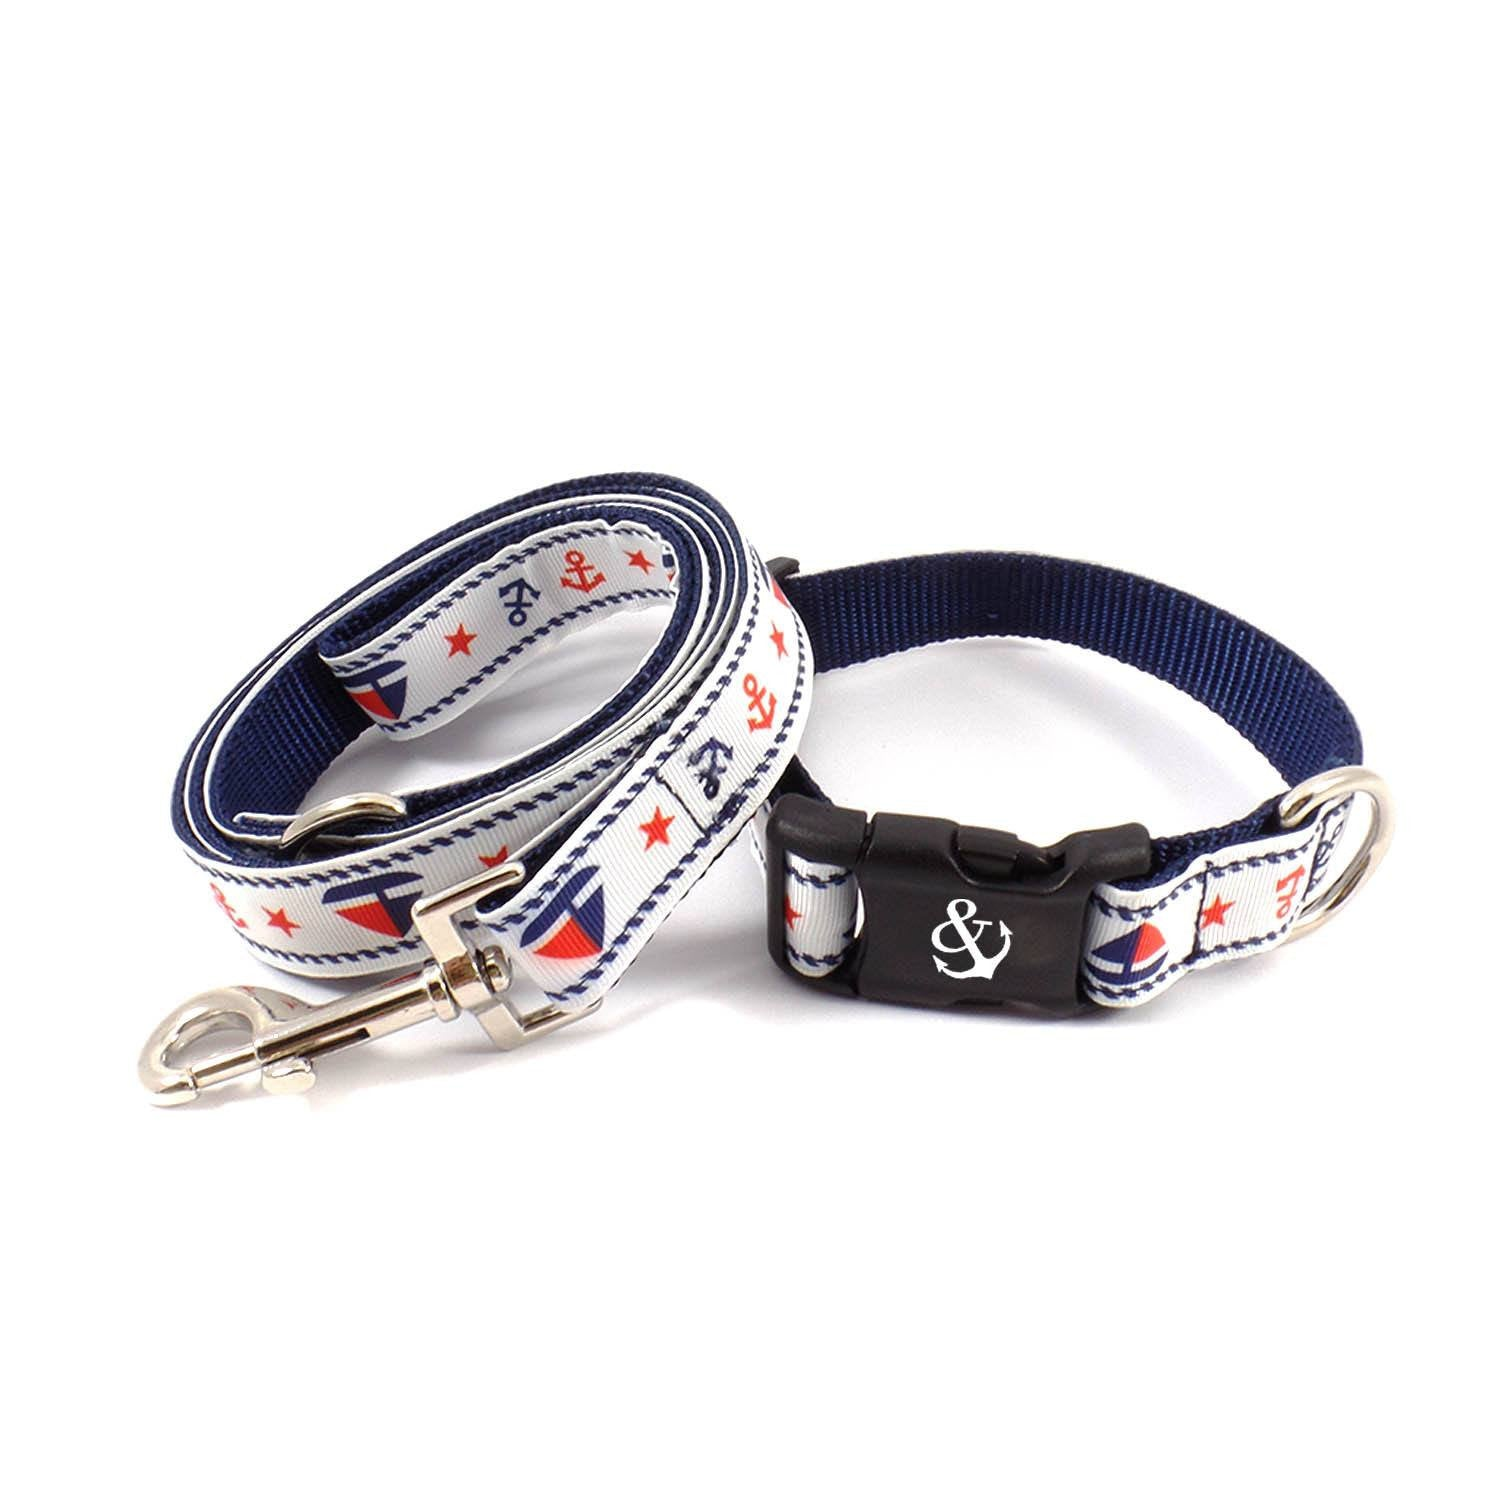 White with Boats and Anchors Collar - Beach & Dog Co.